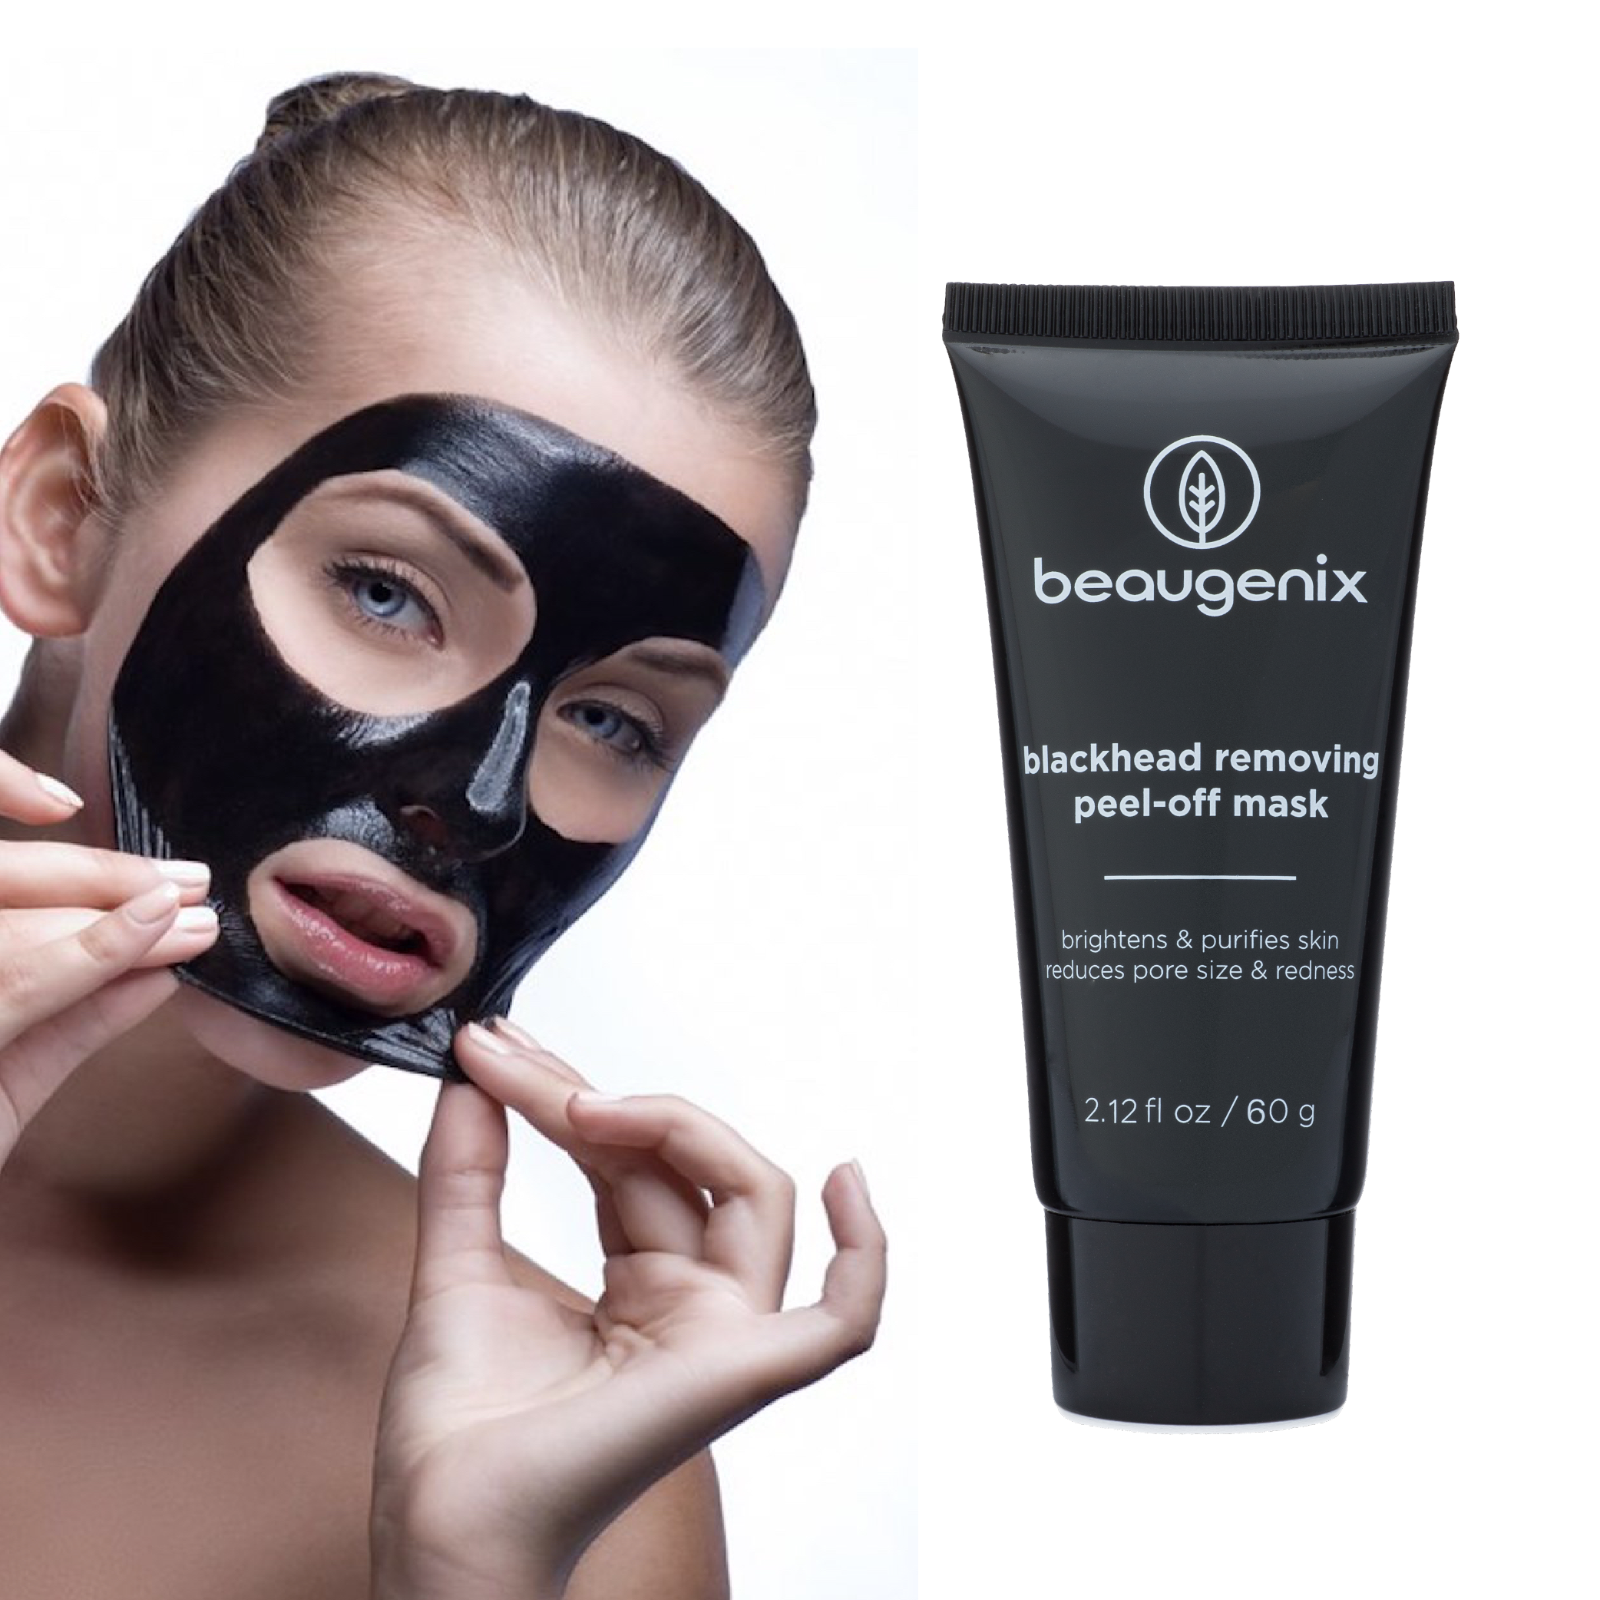 Beaugenix Deep Cleansing Blackhead Removing Skin Purifying Face Peel 5740fbda713d6ffb458b5021